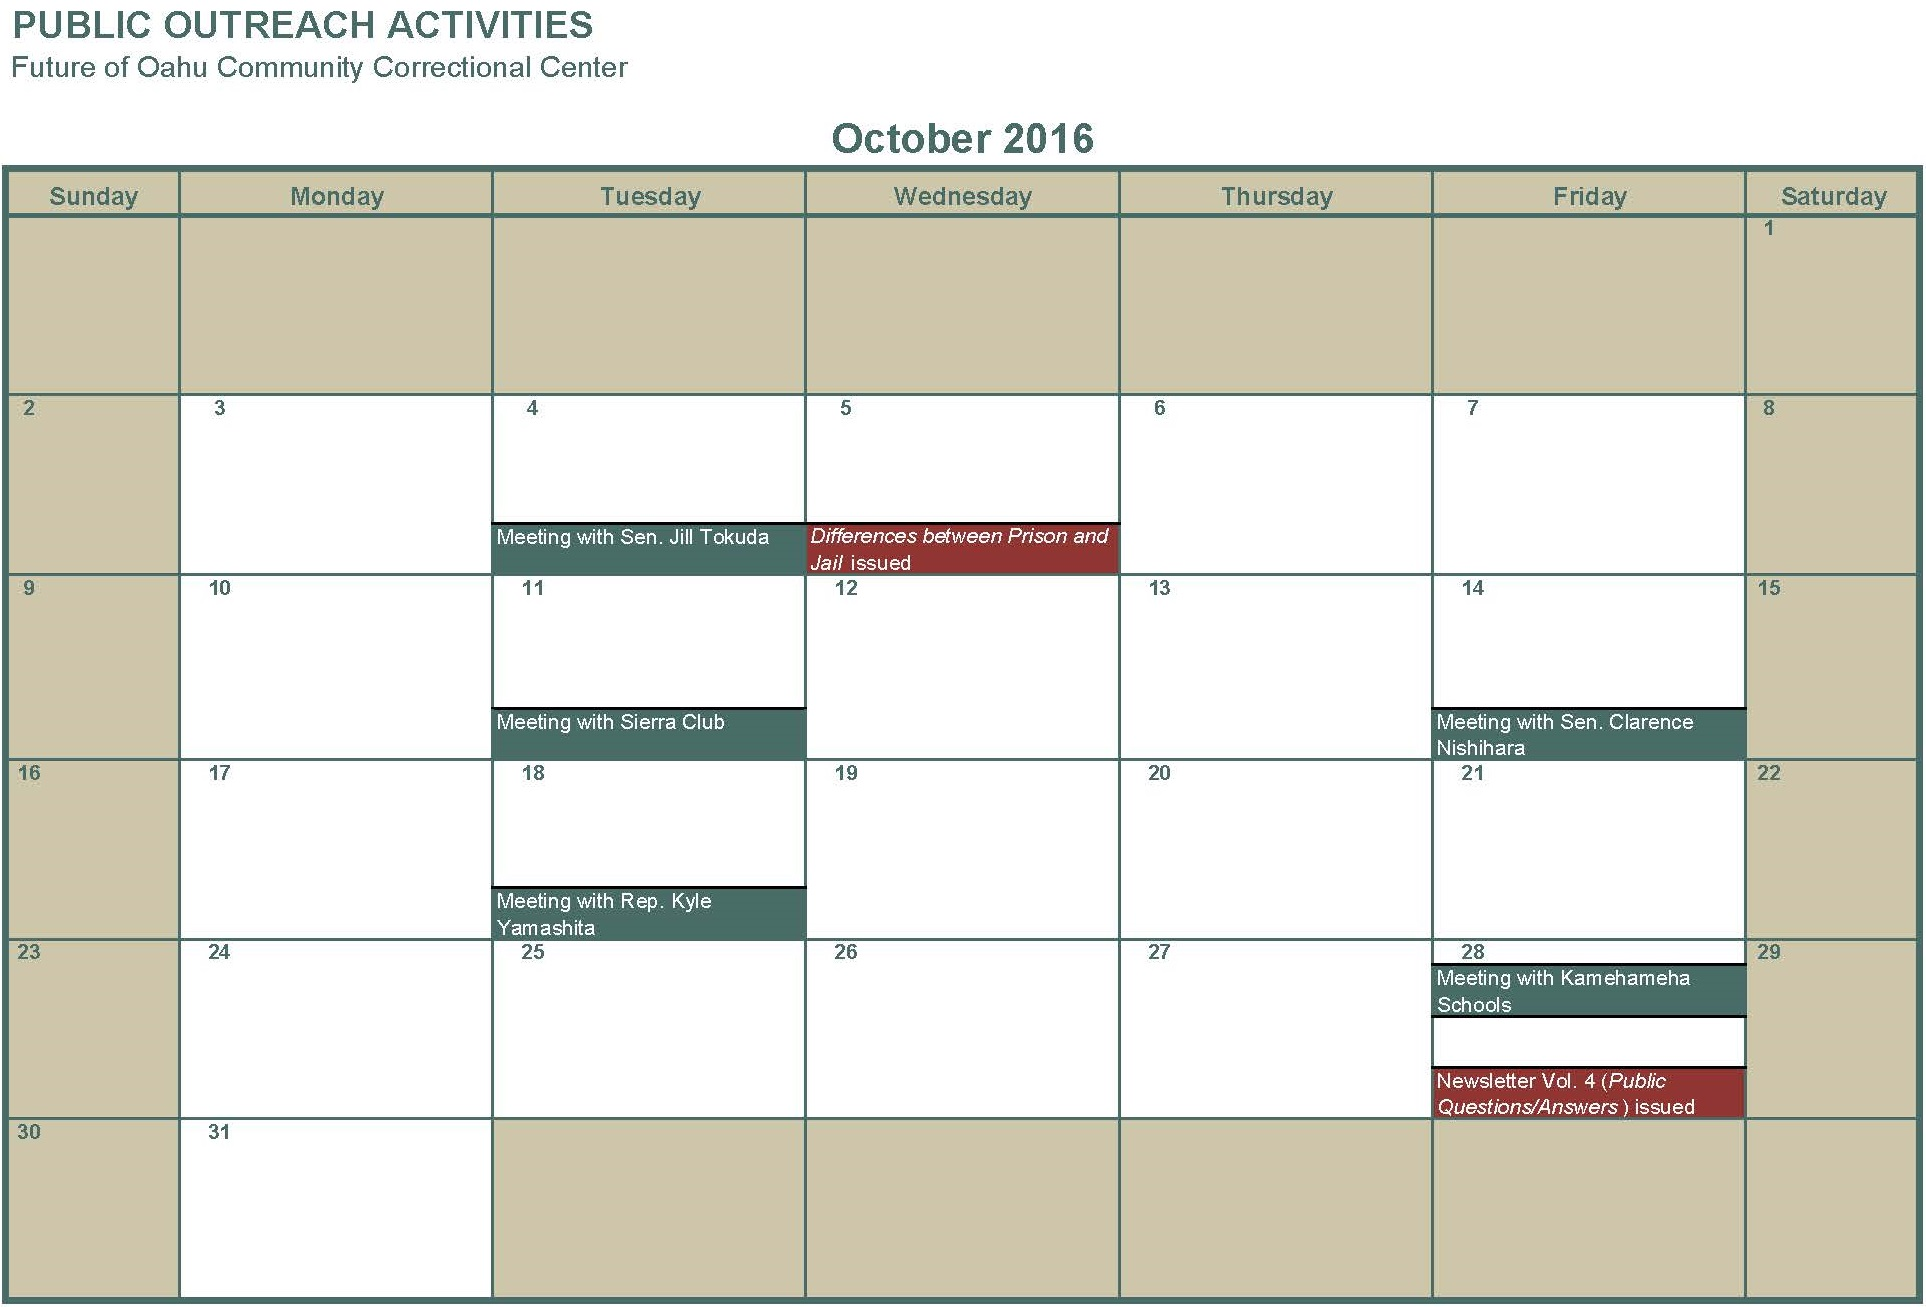 October 2016 Meetings attended